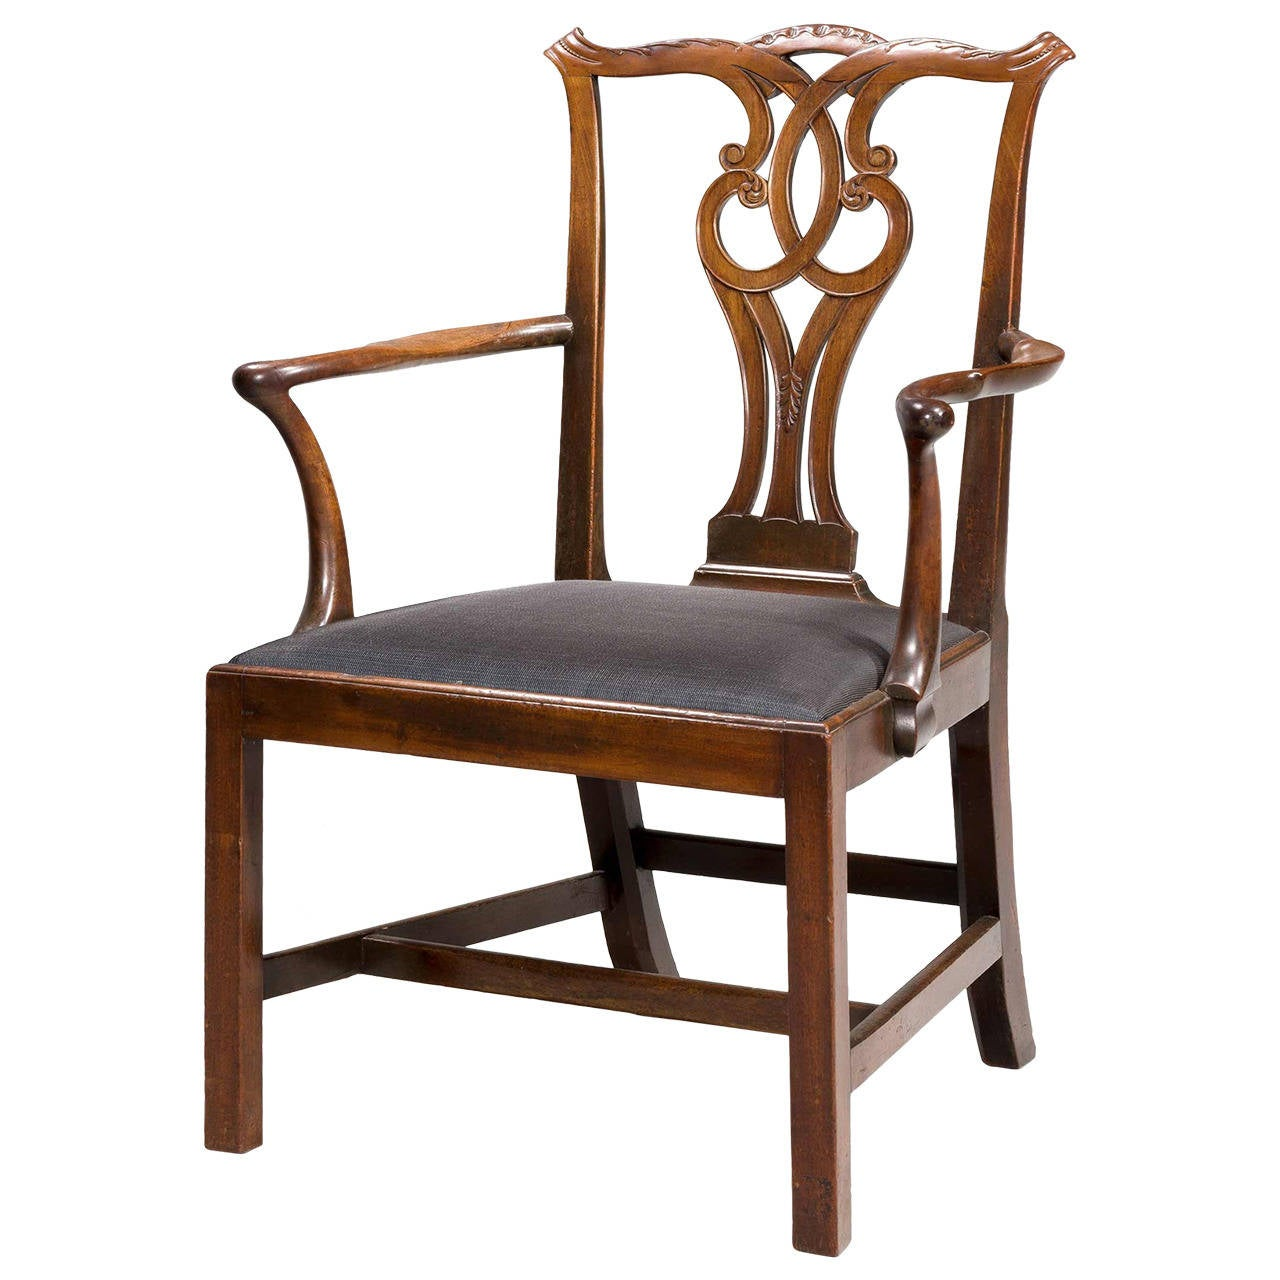 Chippendale Furniture: Chippendale Period Elbow Chair For Sale At 1stdibs